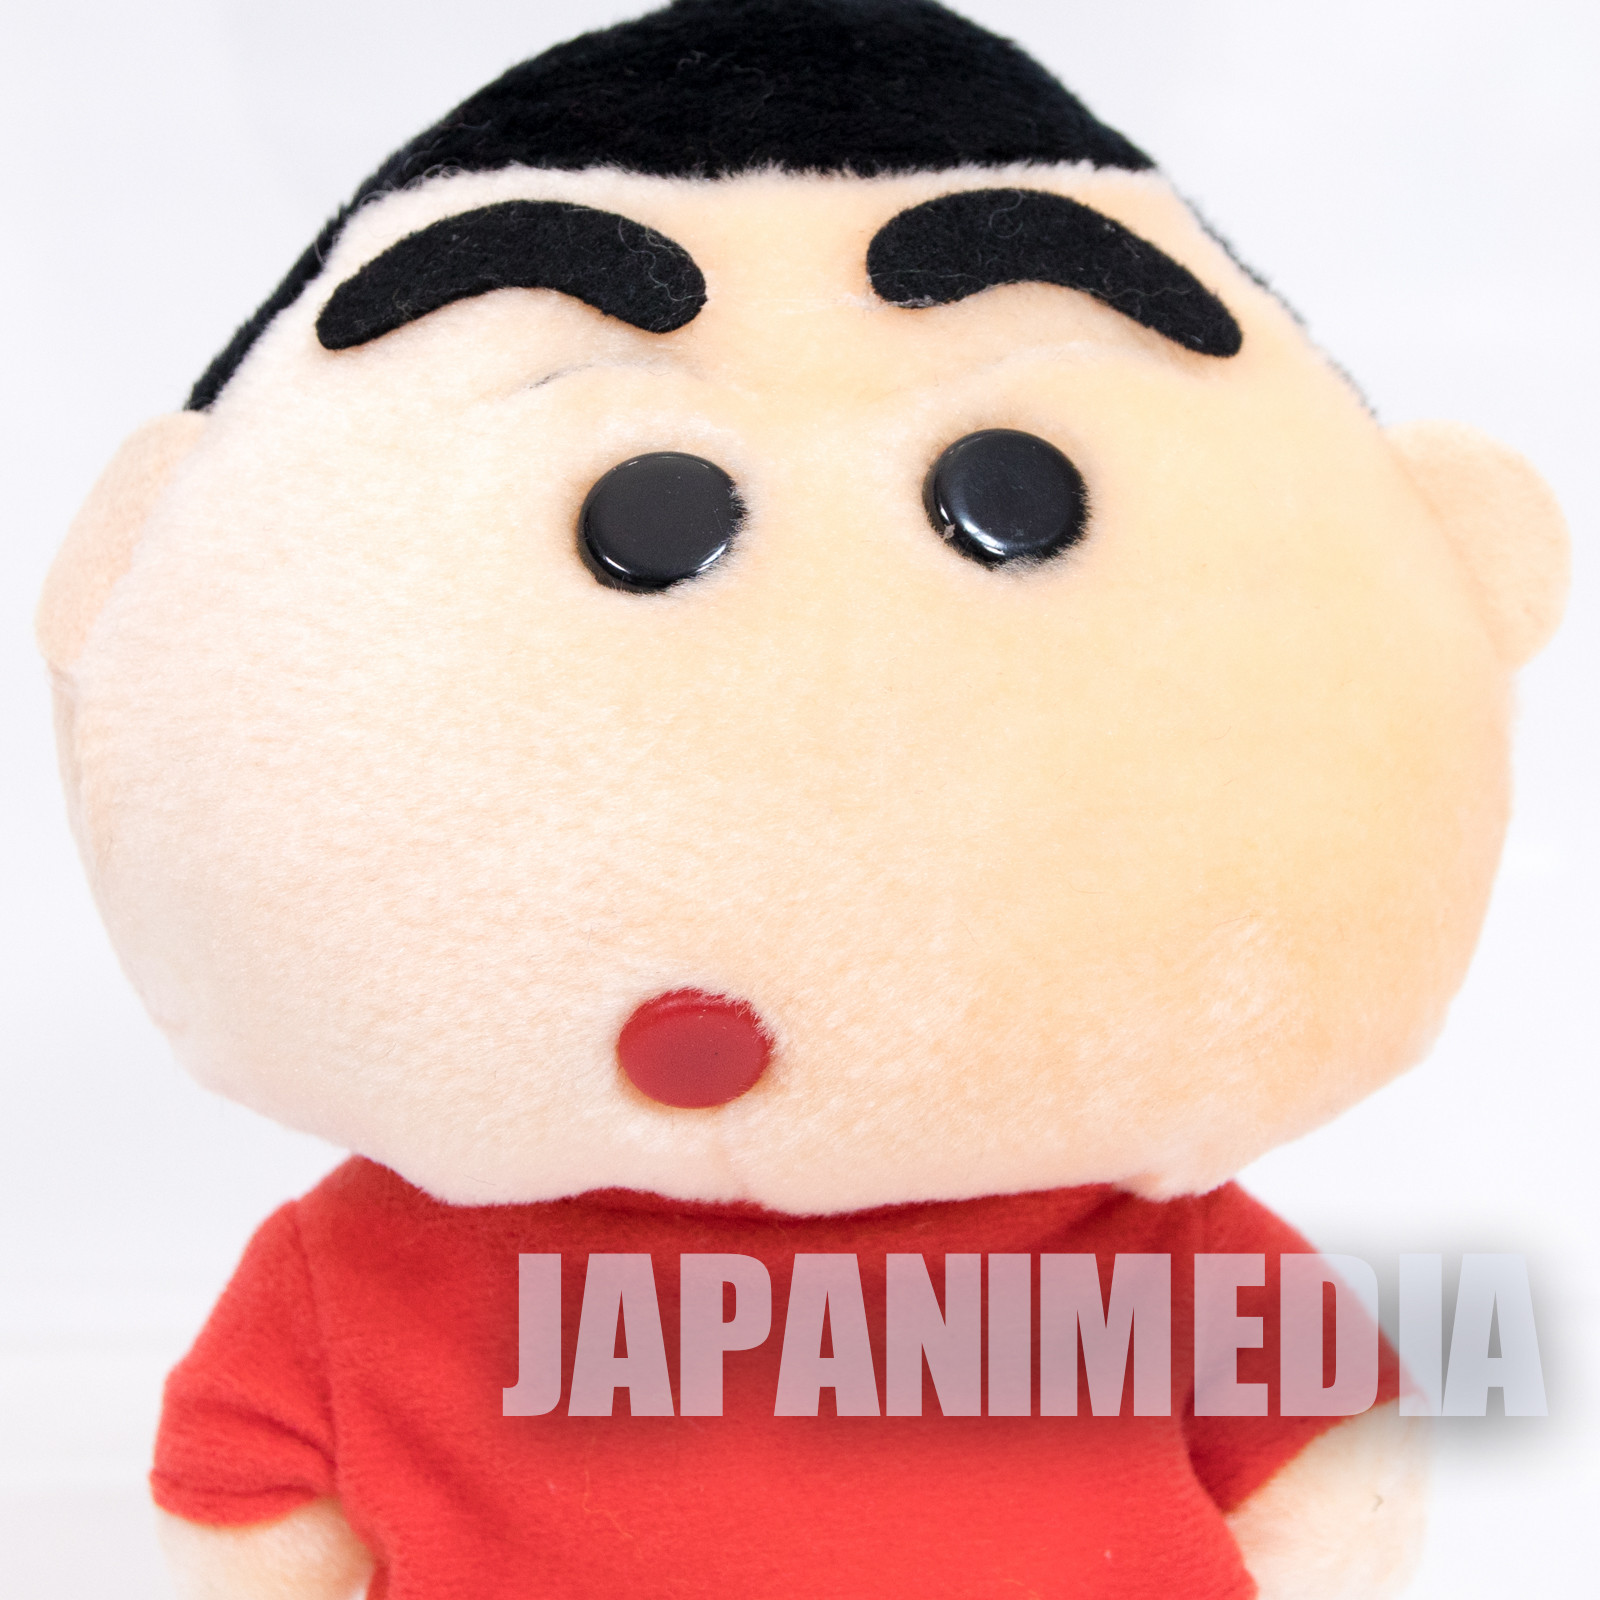 Retro Crayon Shin-chan Plush Doll Normal JAPAN ANIME